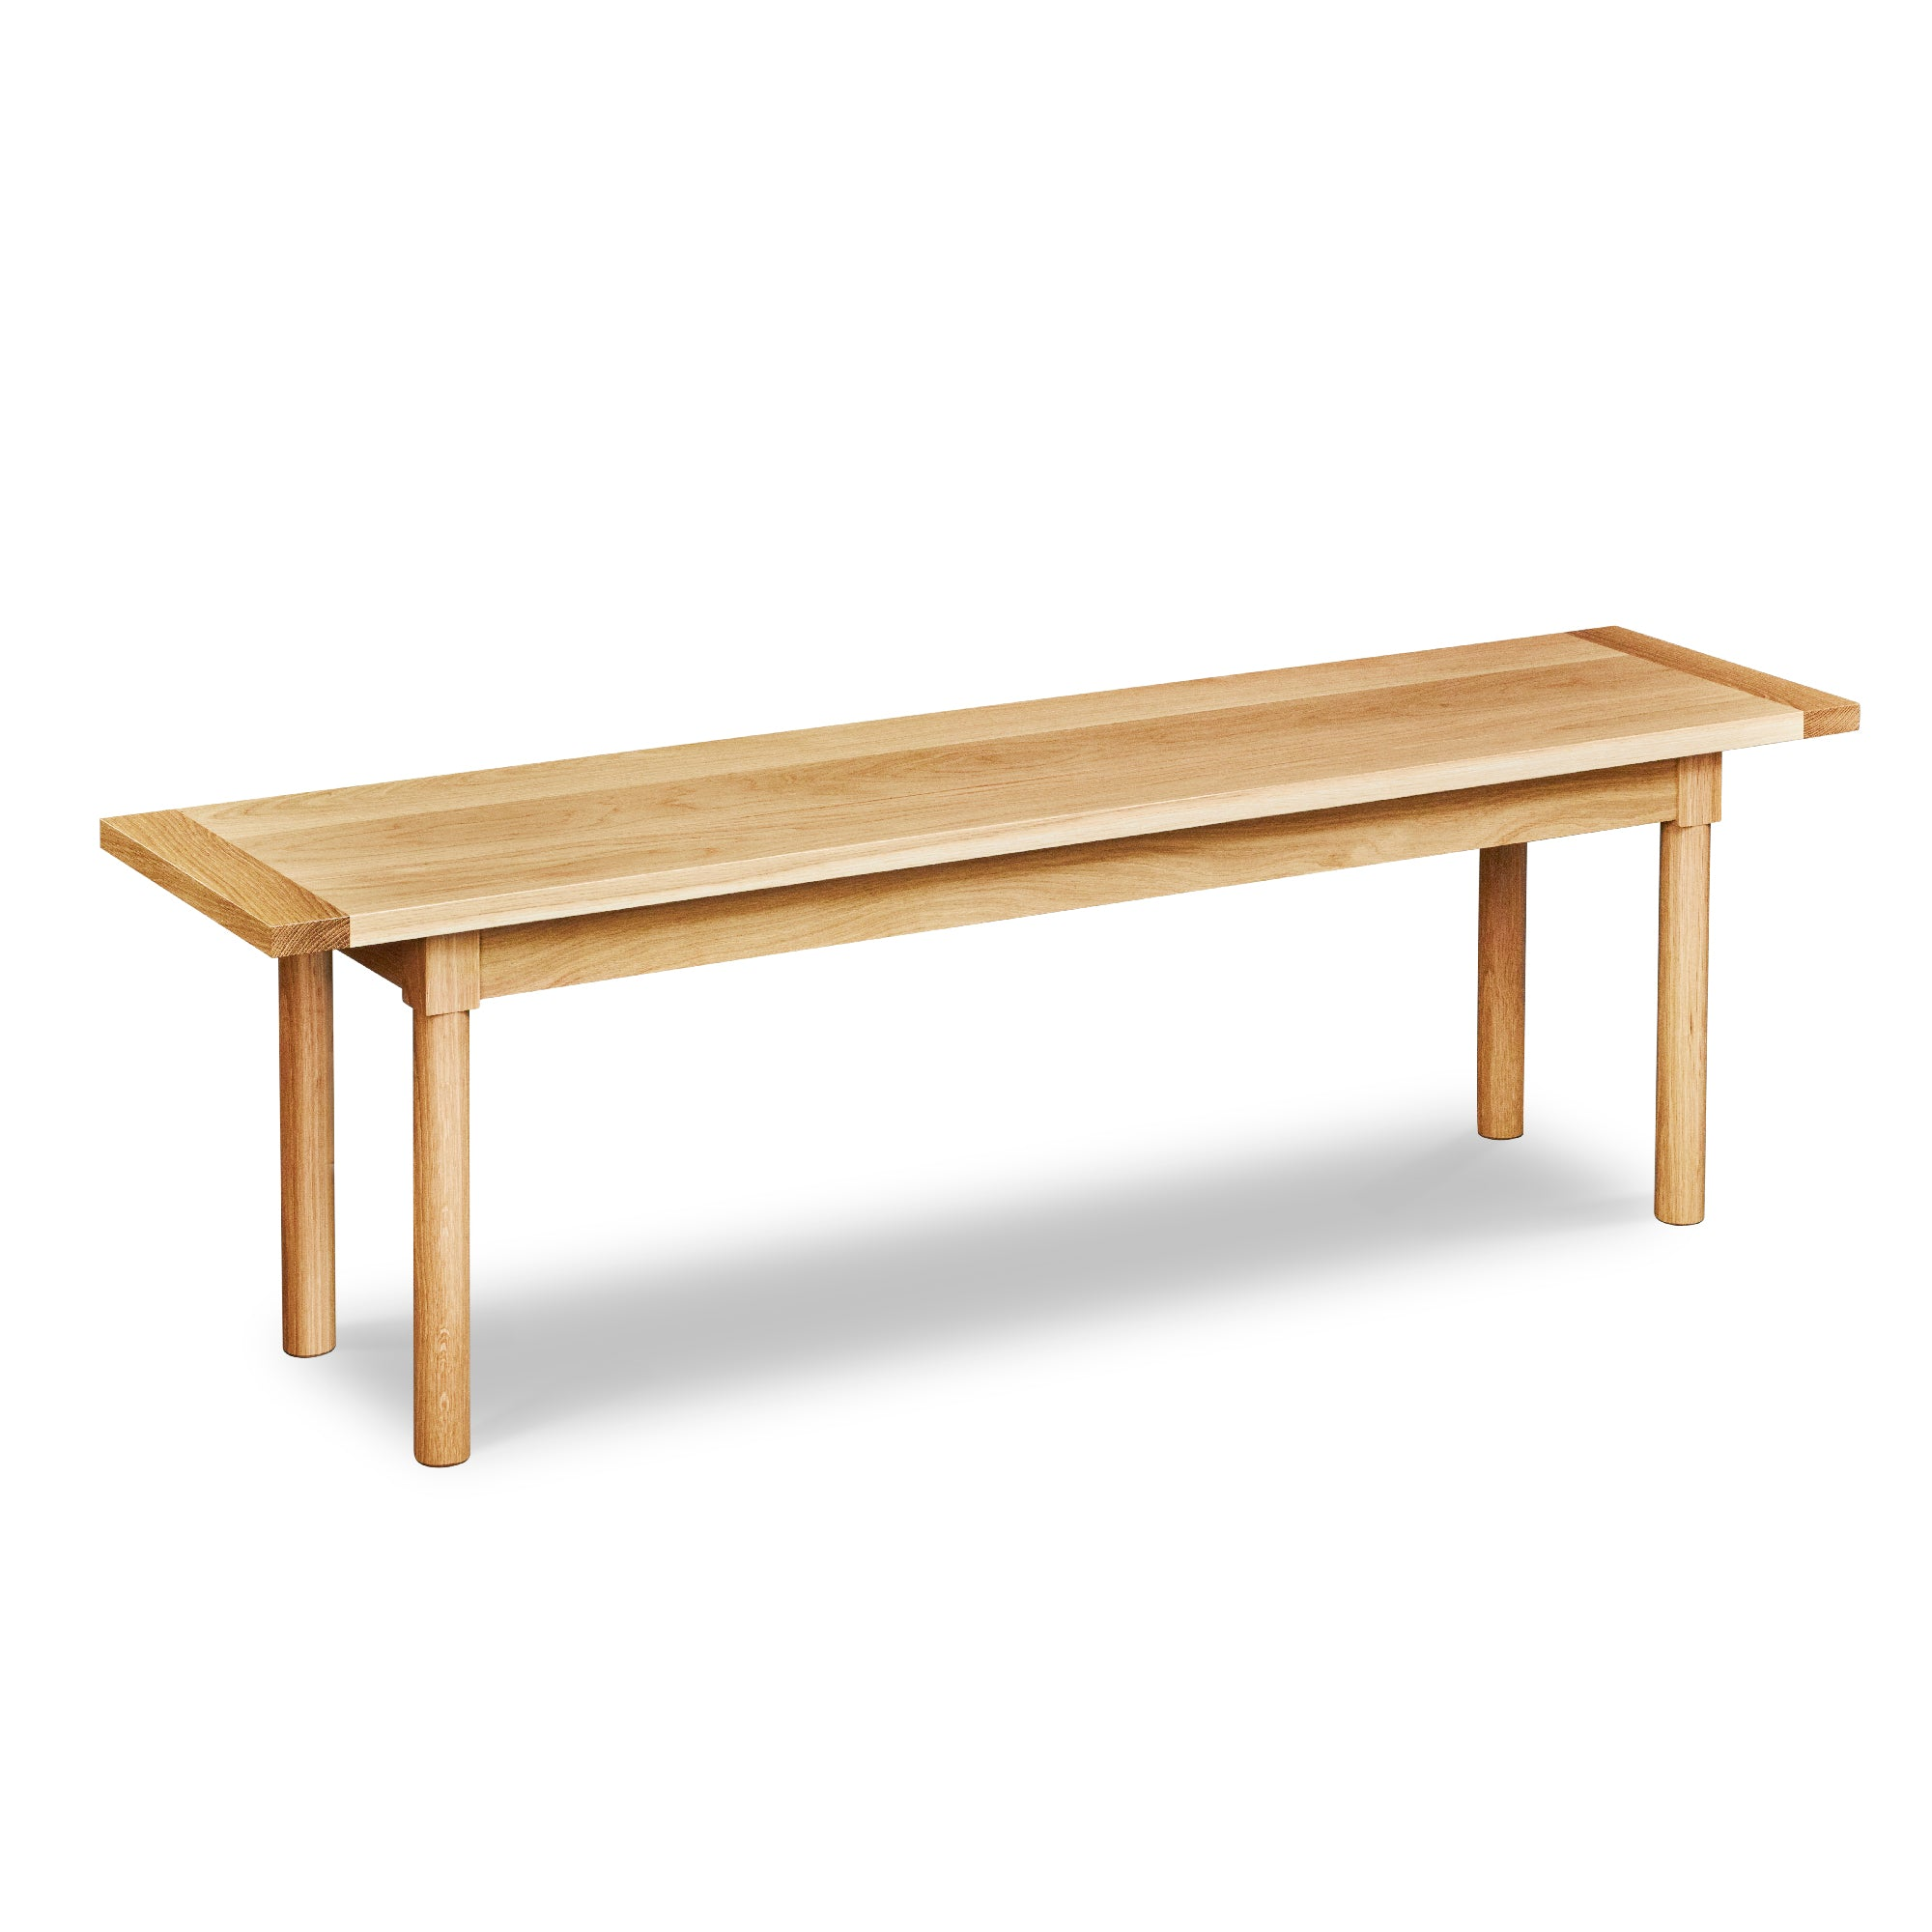 Modern Revelry bench with straight turned legs and breadboard ends, built in solid white oak